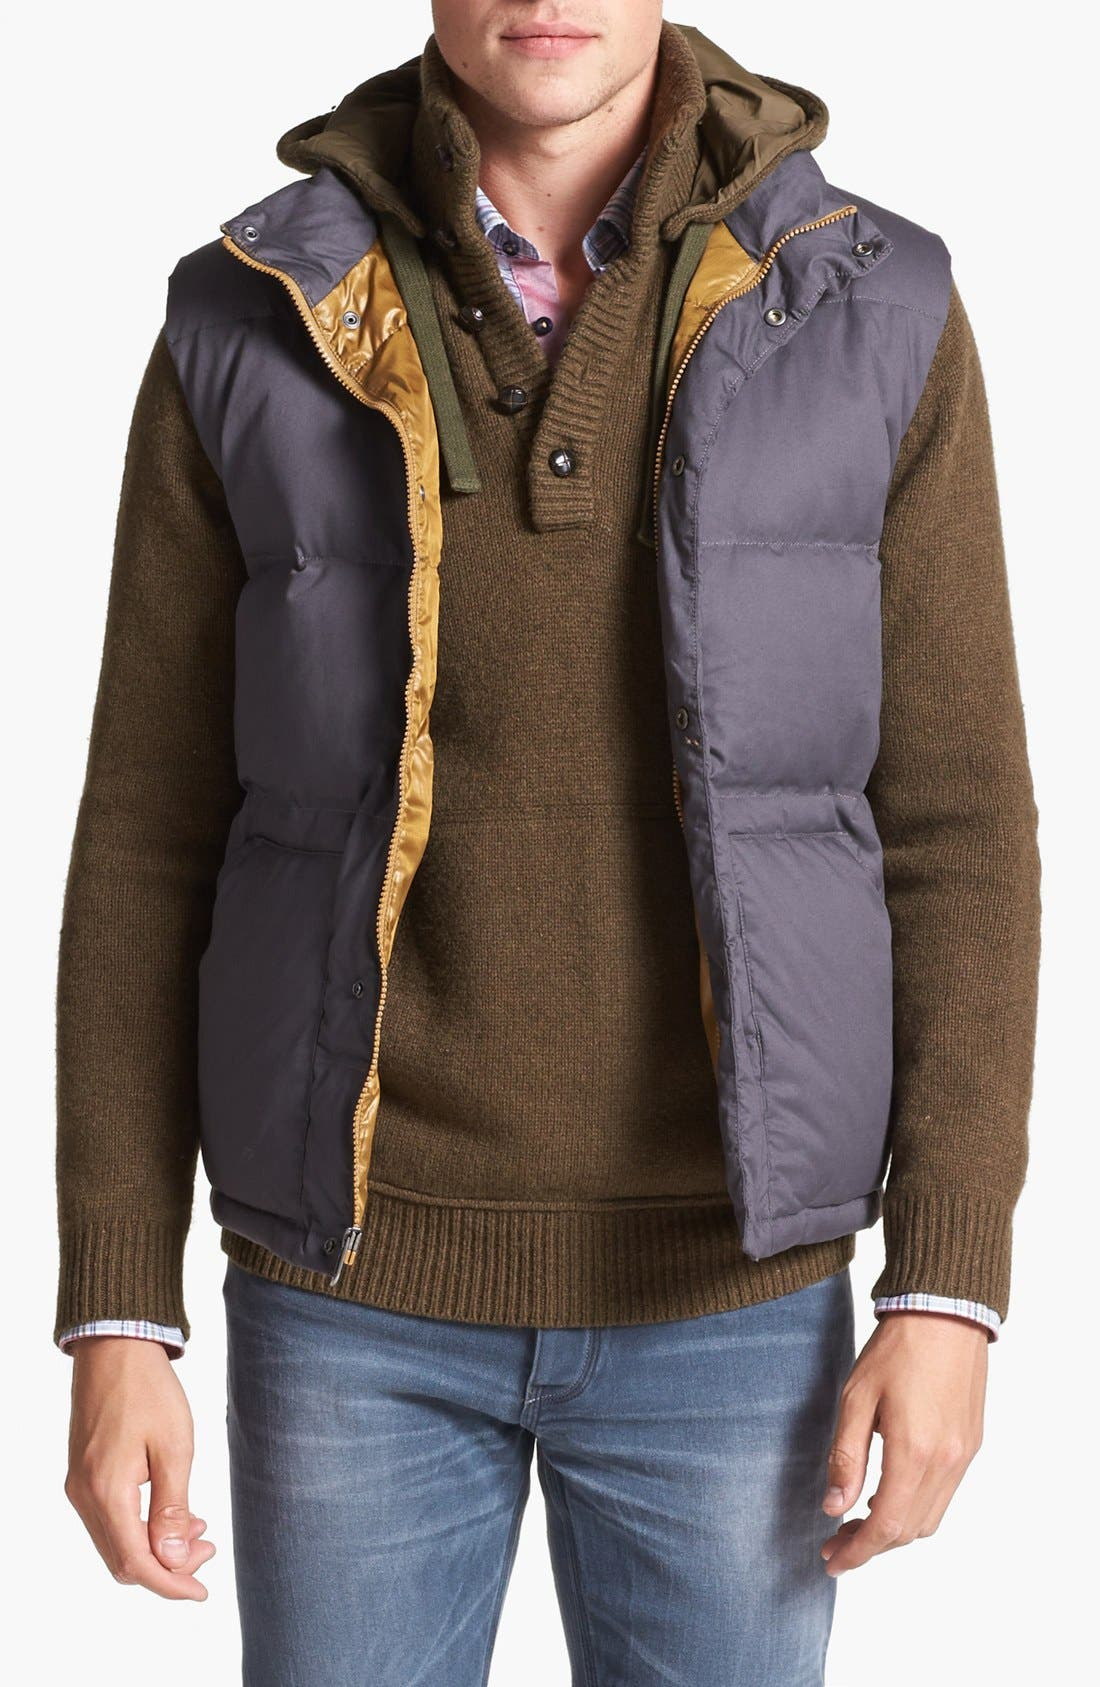 Alternate Image 1 Selected - The North Face 'Lindero' Down Vest